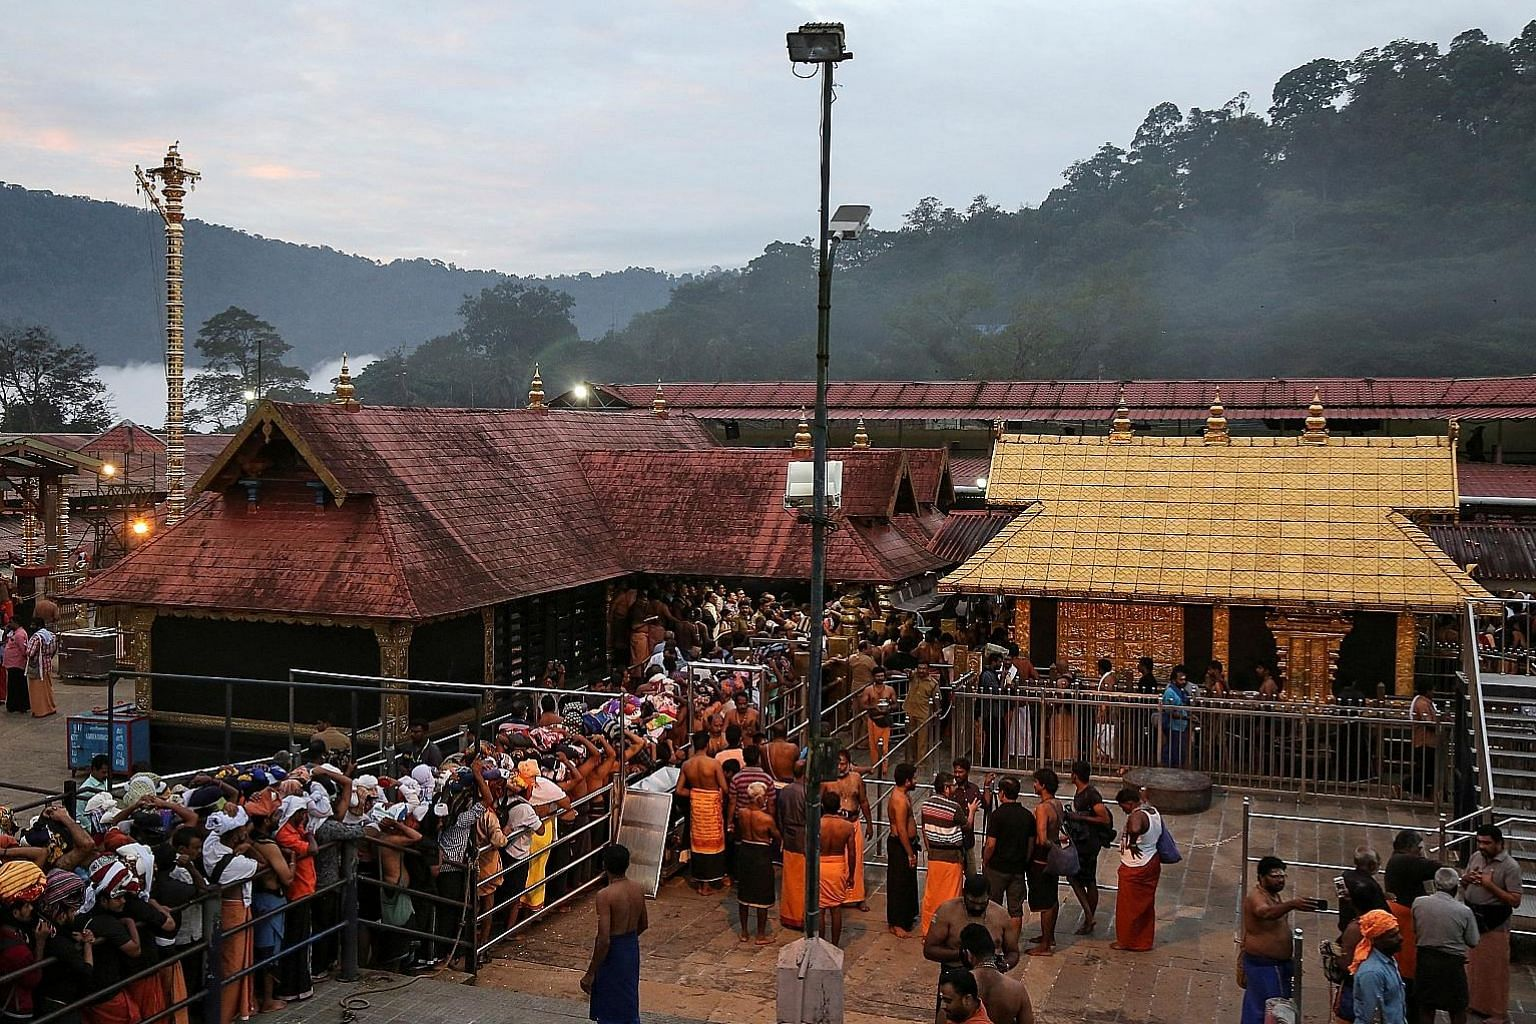 Hindu devotees at Sabarimala temple in Kerala in October last year. Following a Supreme Court verdict, women are now allowed to enter it, but the Kerala government has reverted to preventing women of childbearing age from doing so. PHOTO: REUTERS